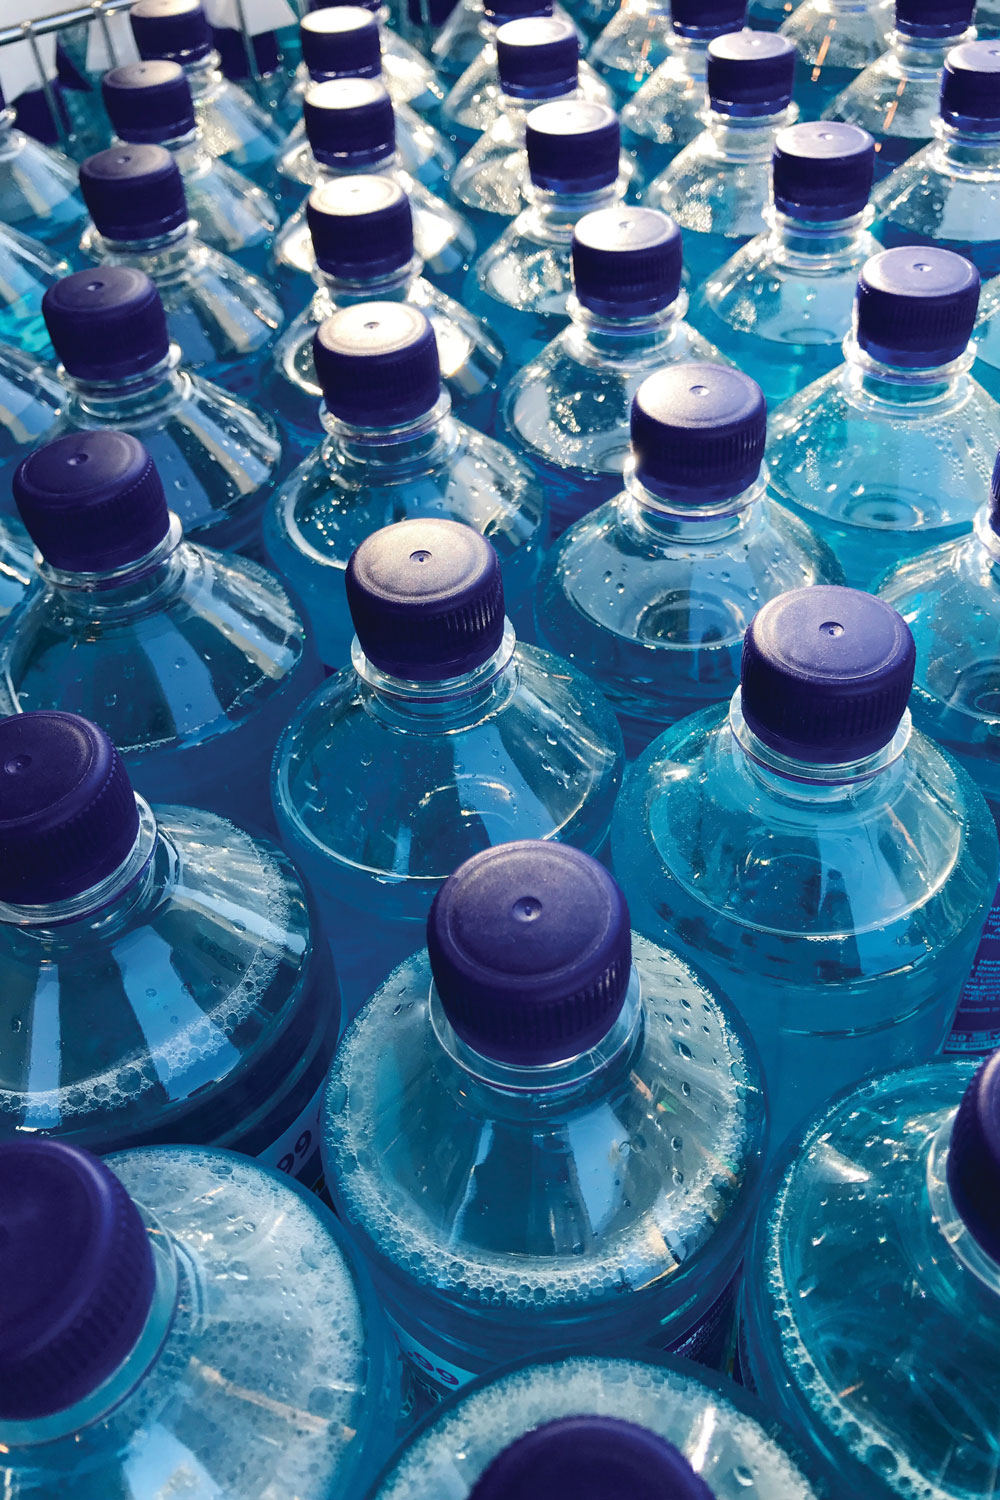 bottled water will remain fresh for years.